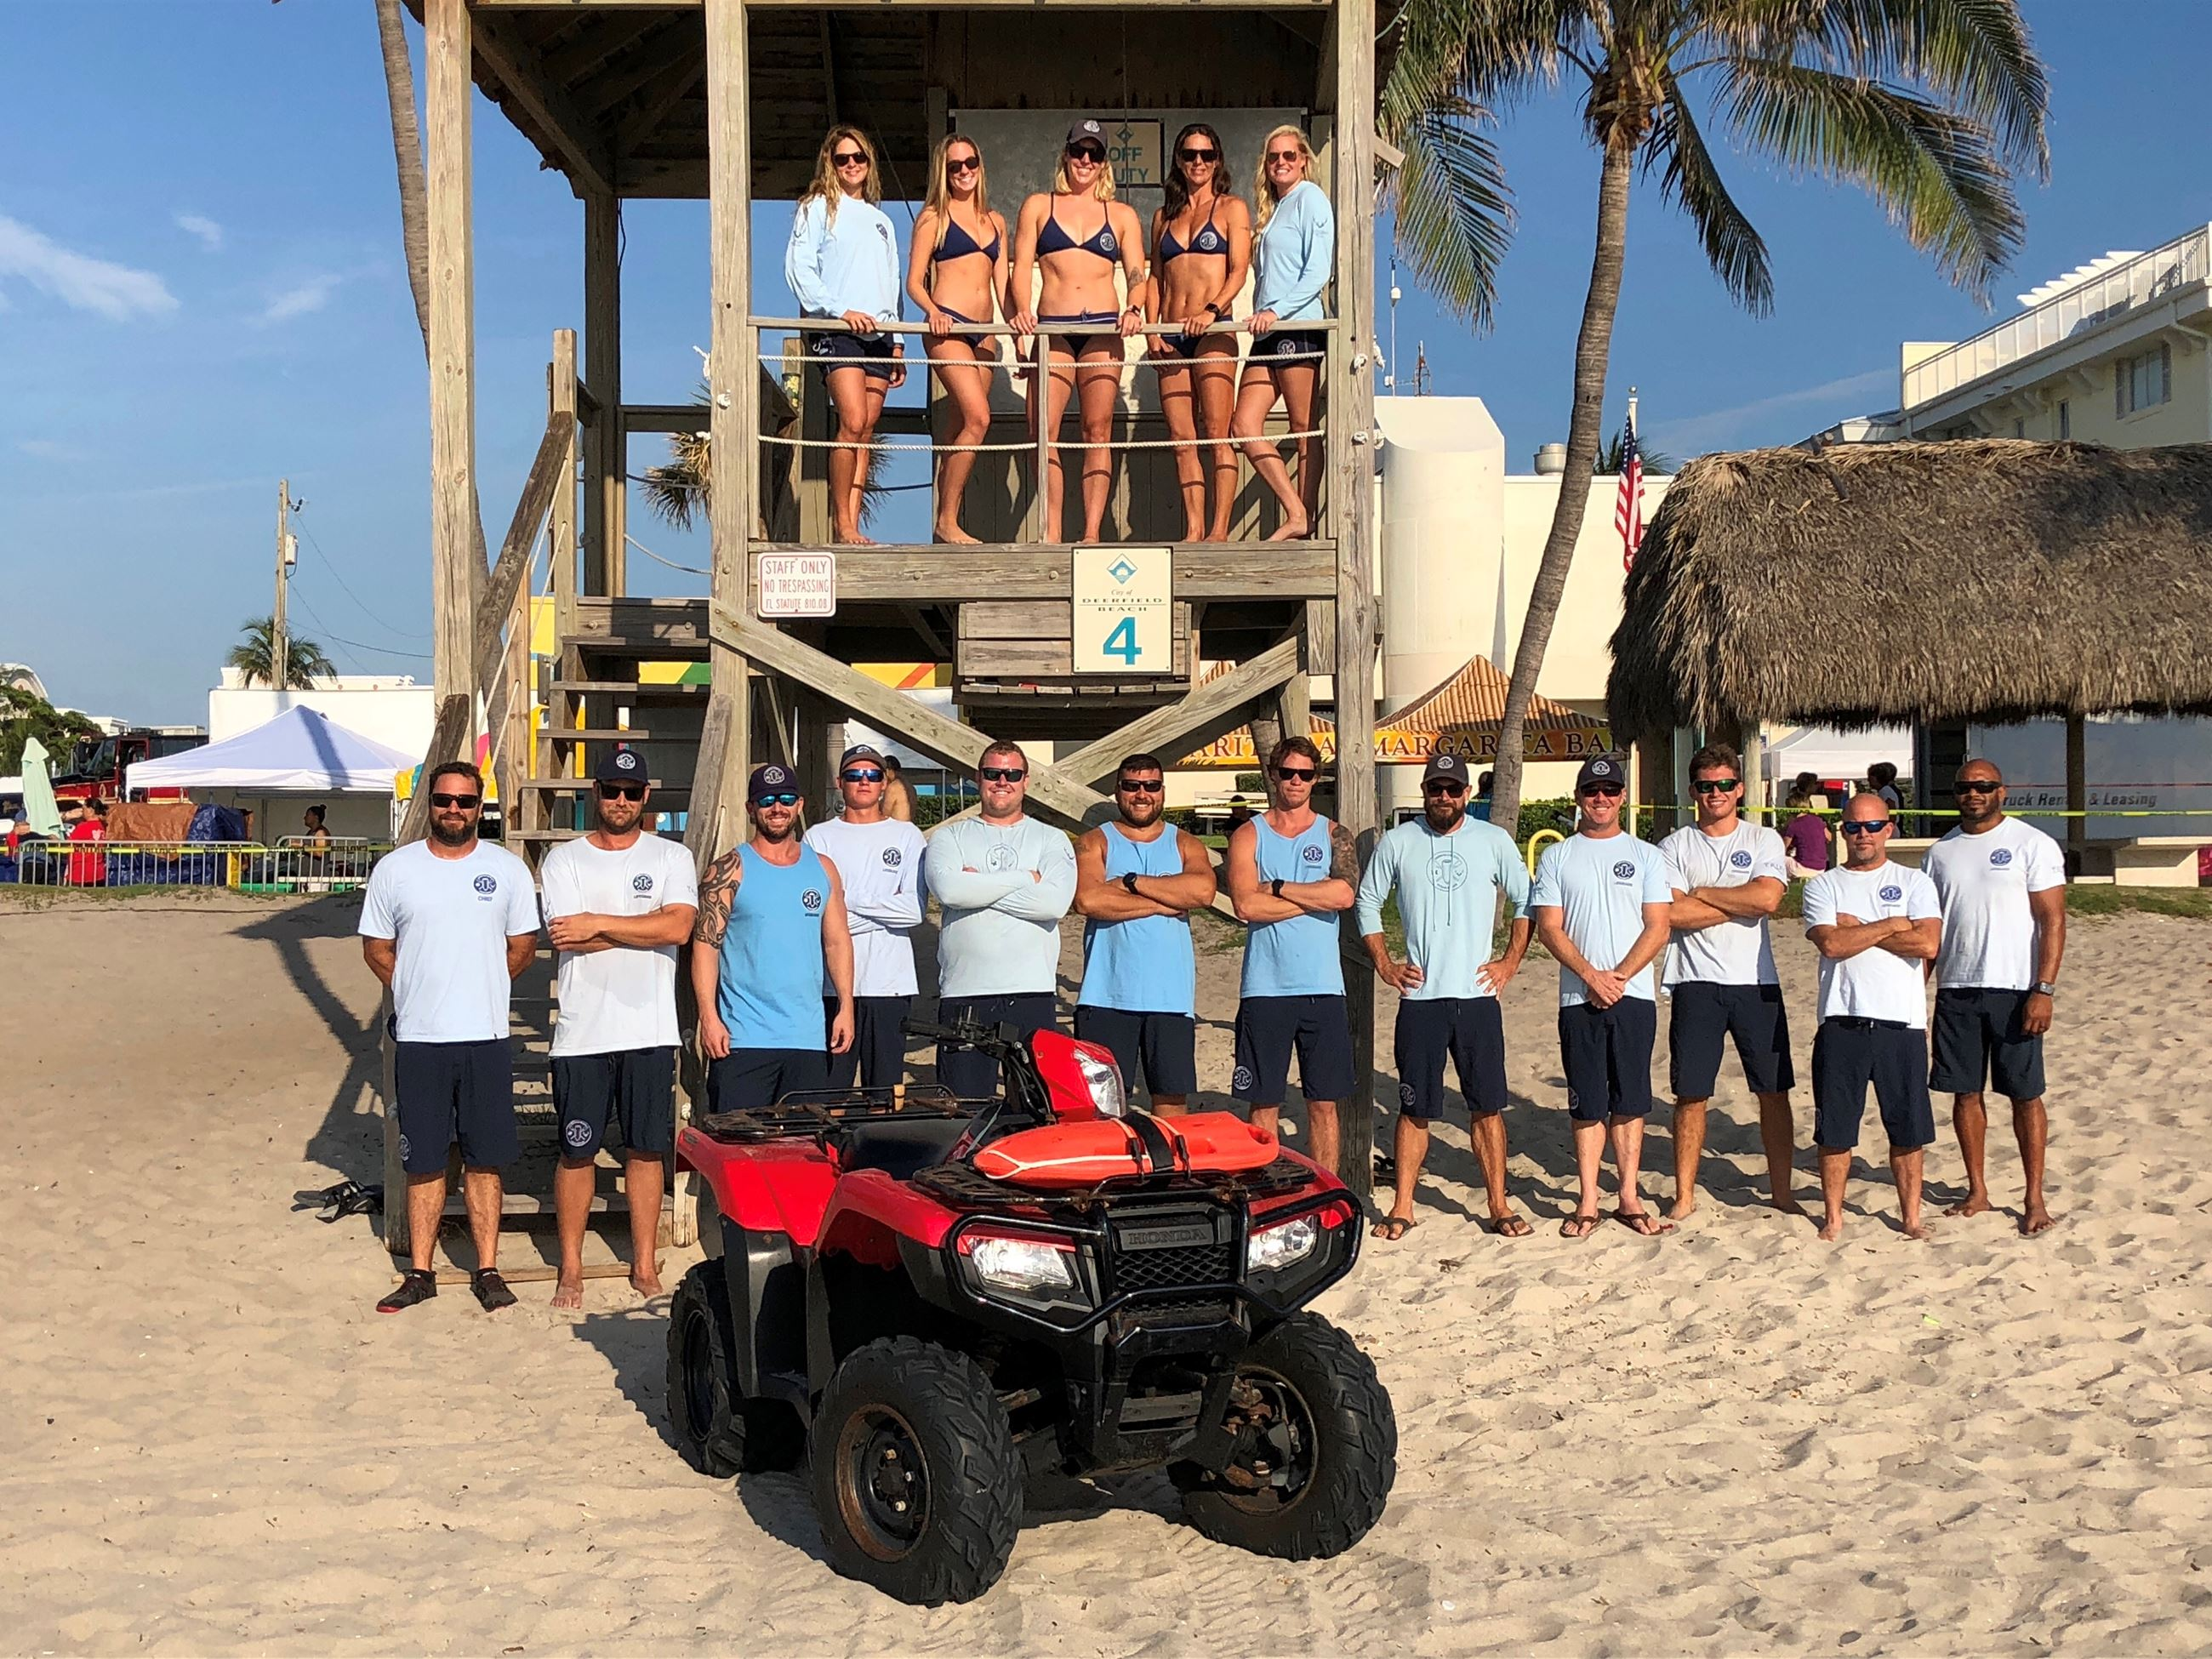 DFB Ocean Rescue Group Photo 2018